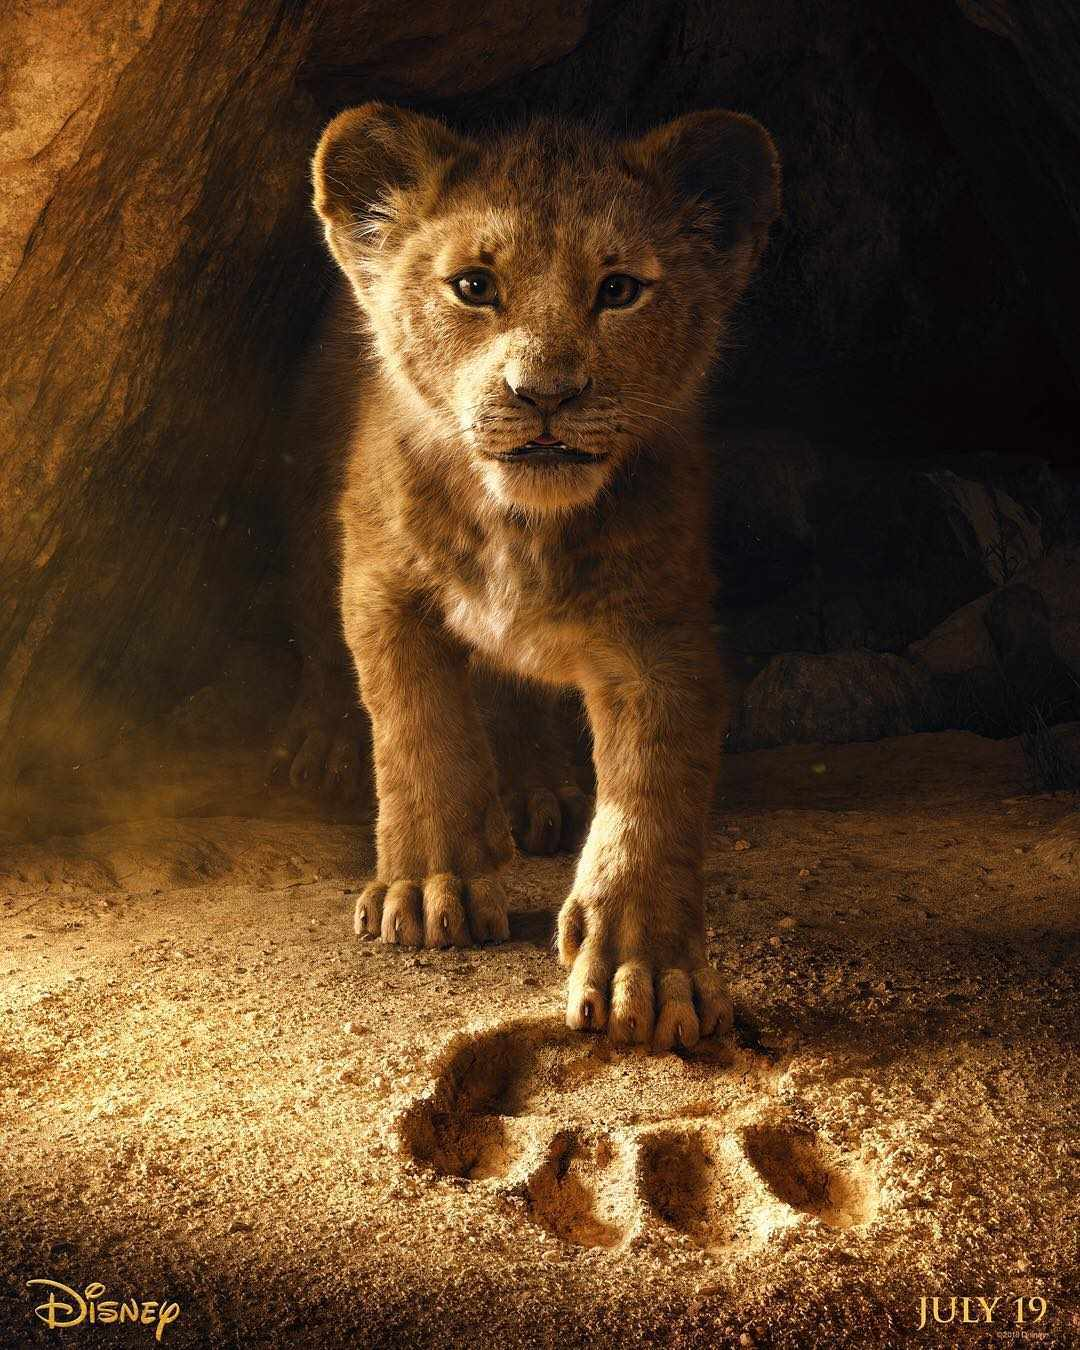 Disney's 'The Lion King' Poster Revealed